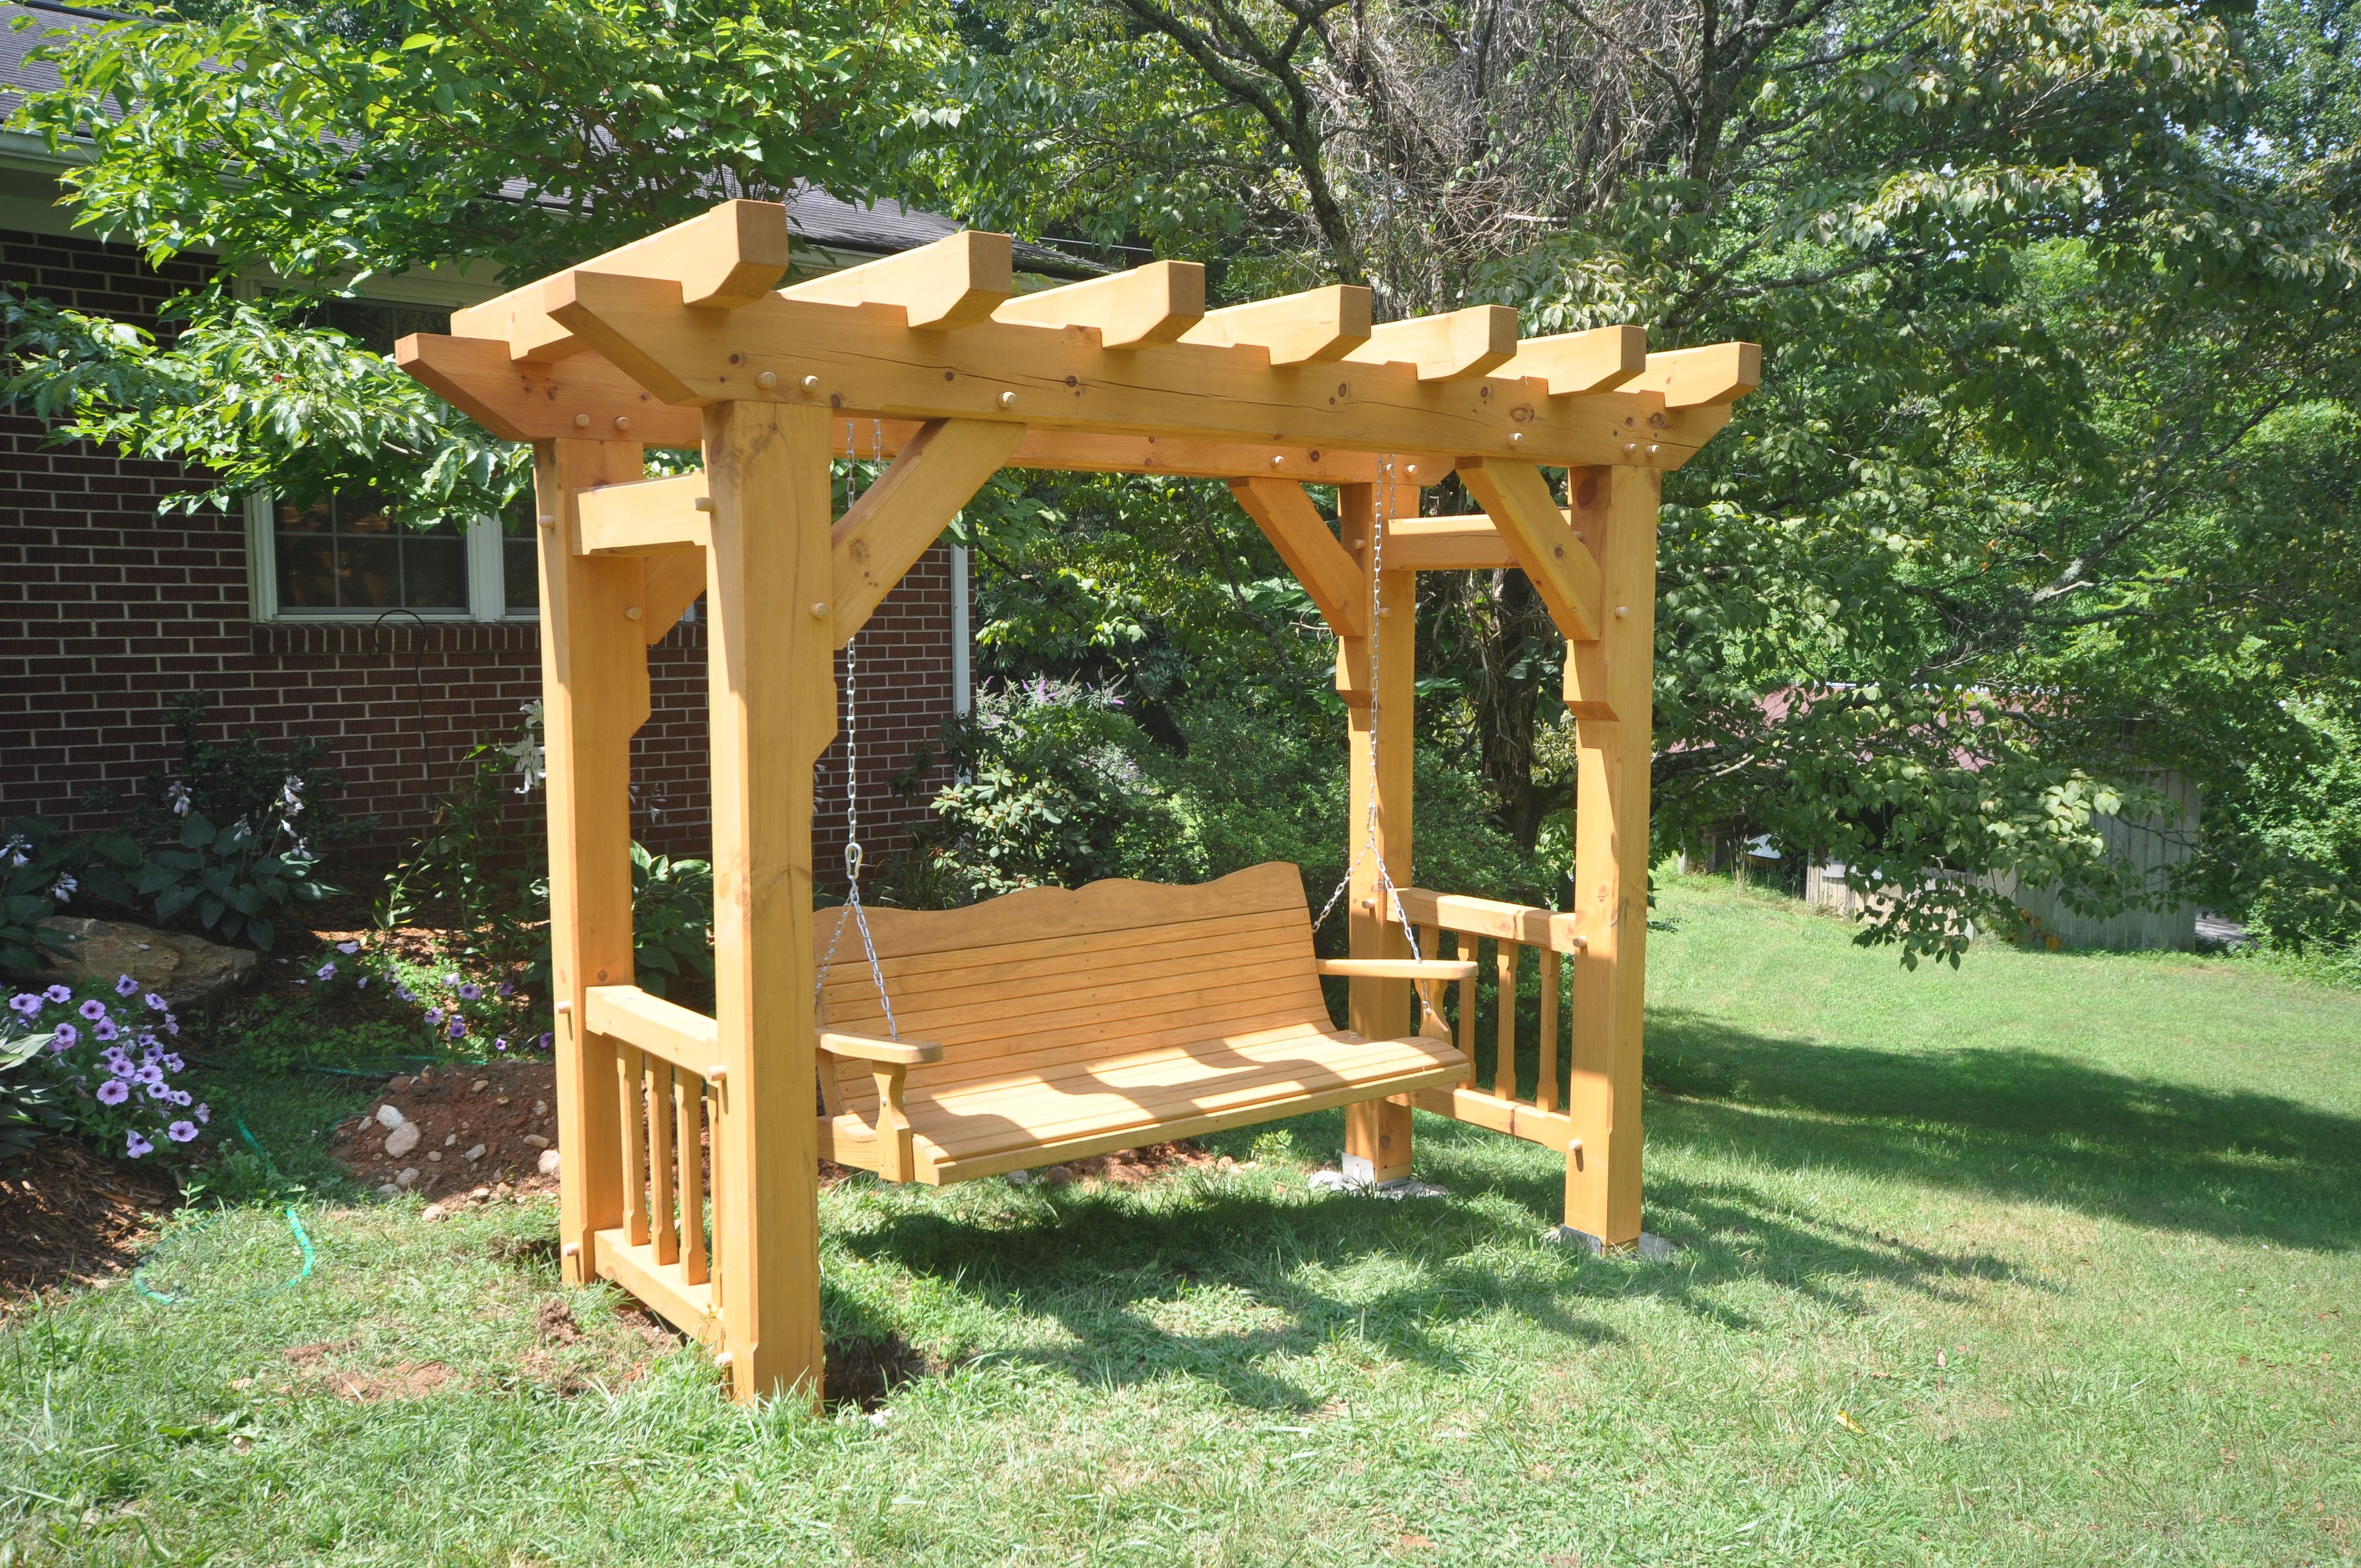 Timber Frame Swing With Gun Stock Posts. Frames